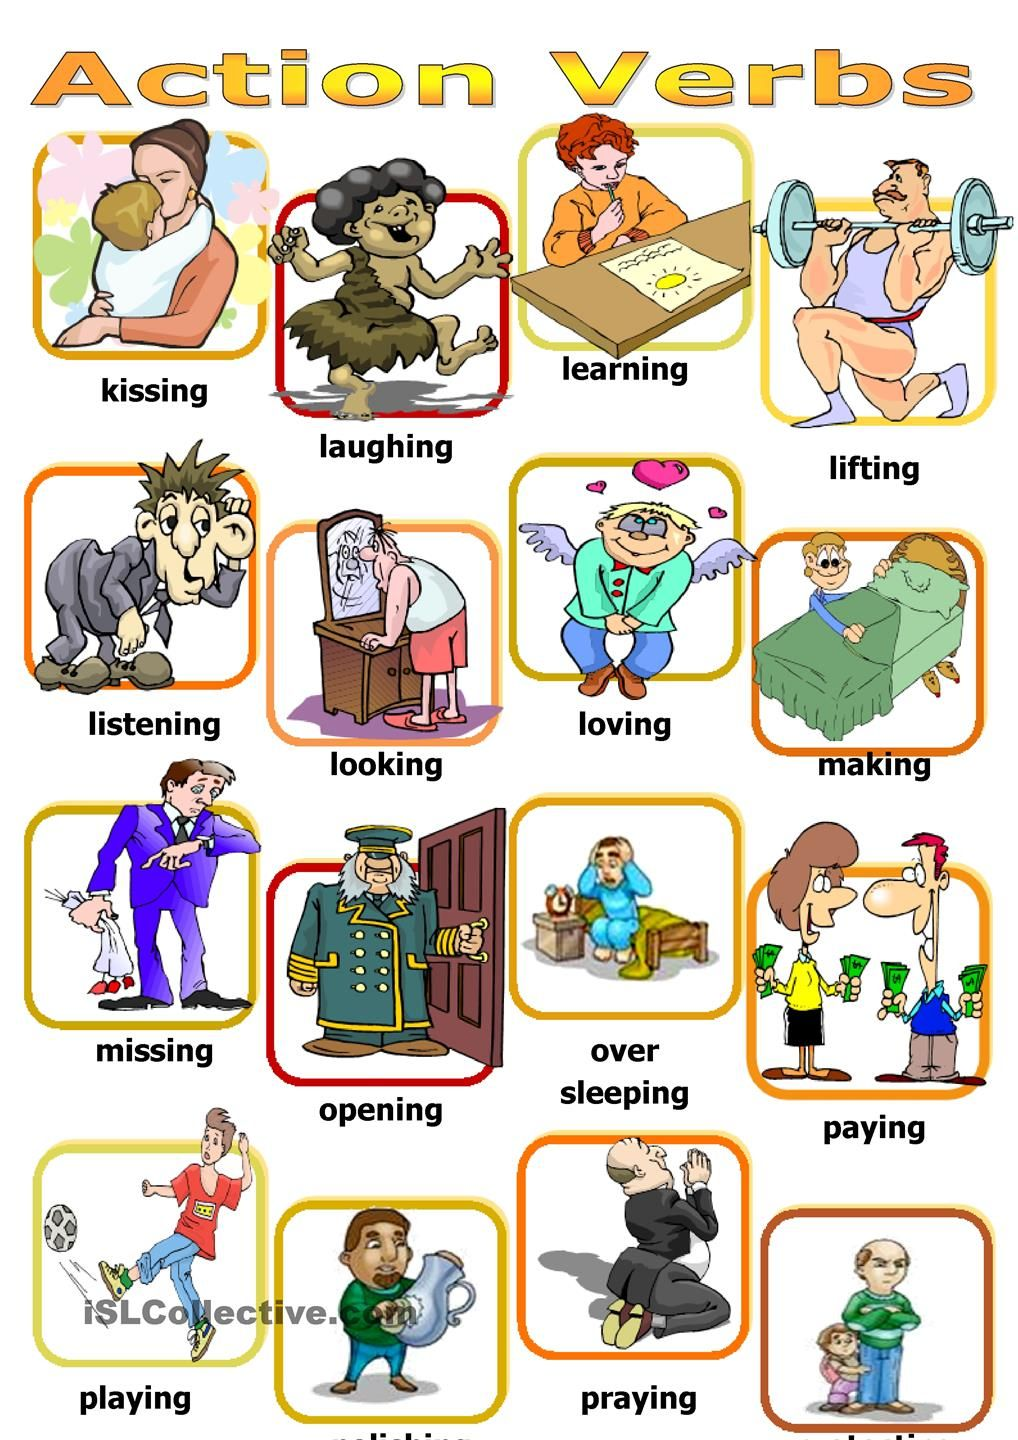 Activities clipart board game. Action verbs angol pinterest